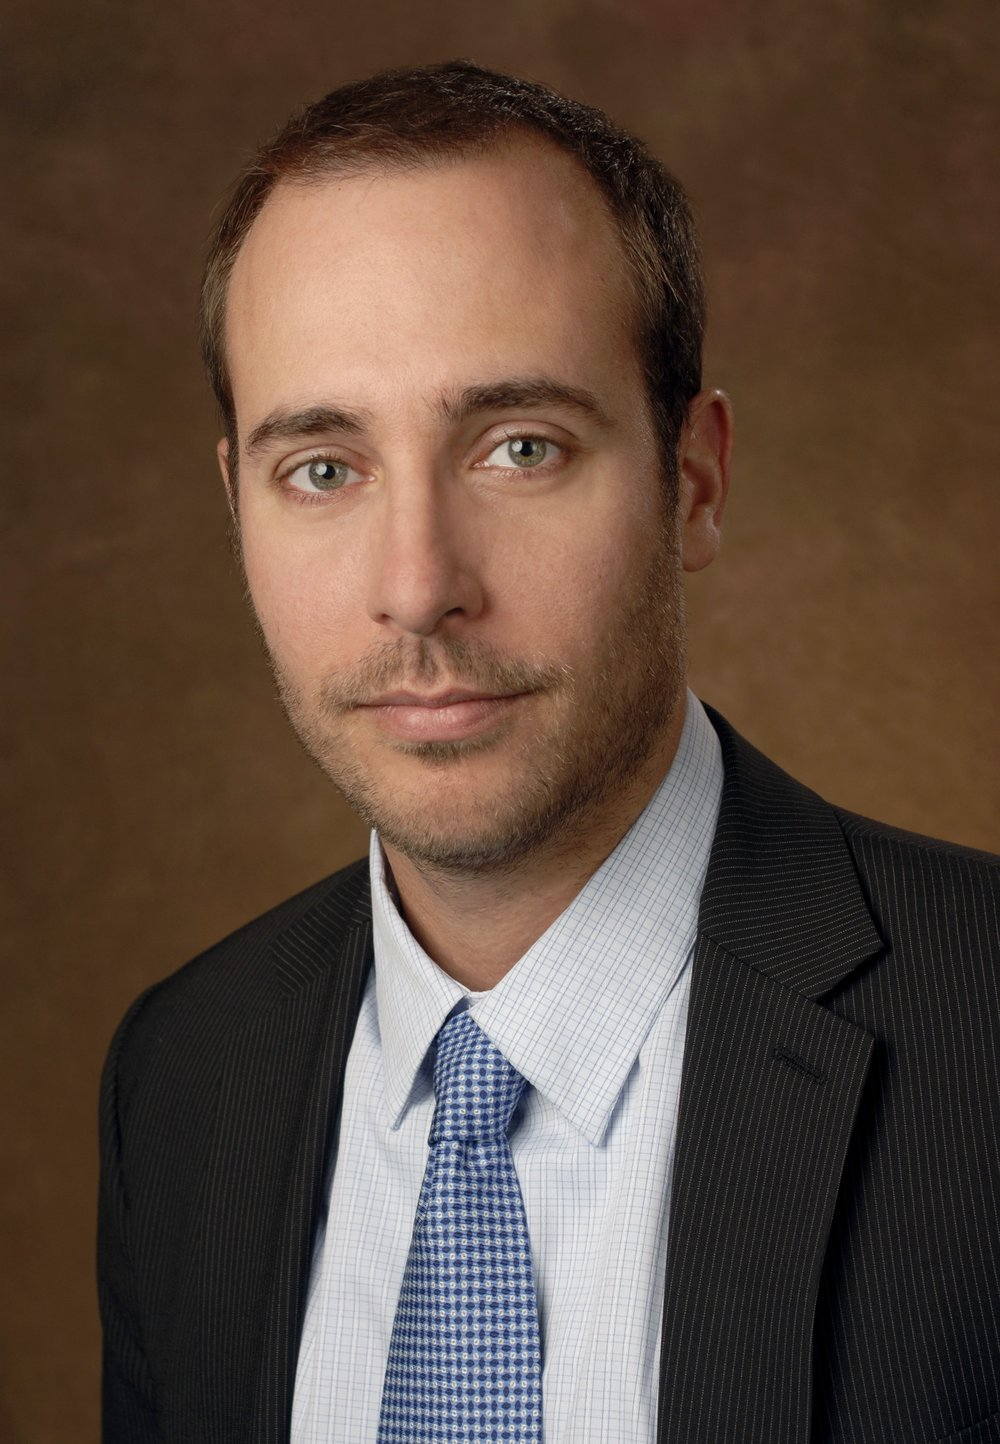 JEFFREY GERTTULA, CBS Sports Digital, Senior Vice President and General Manager